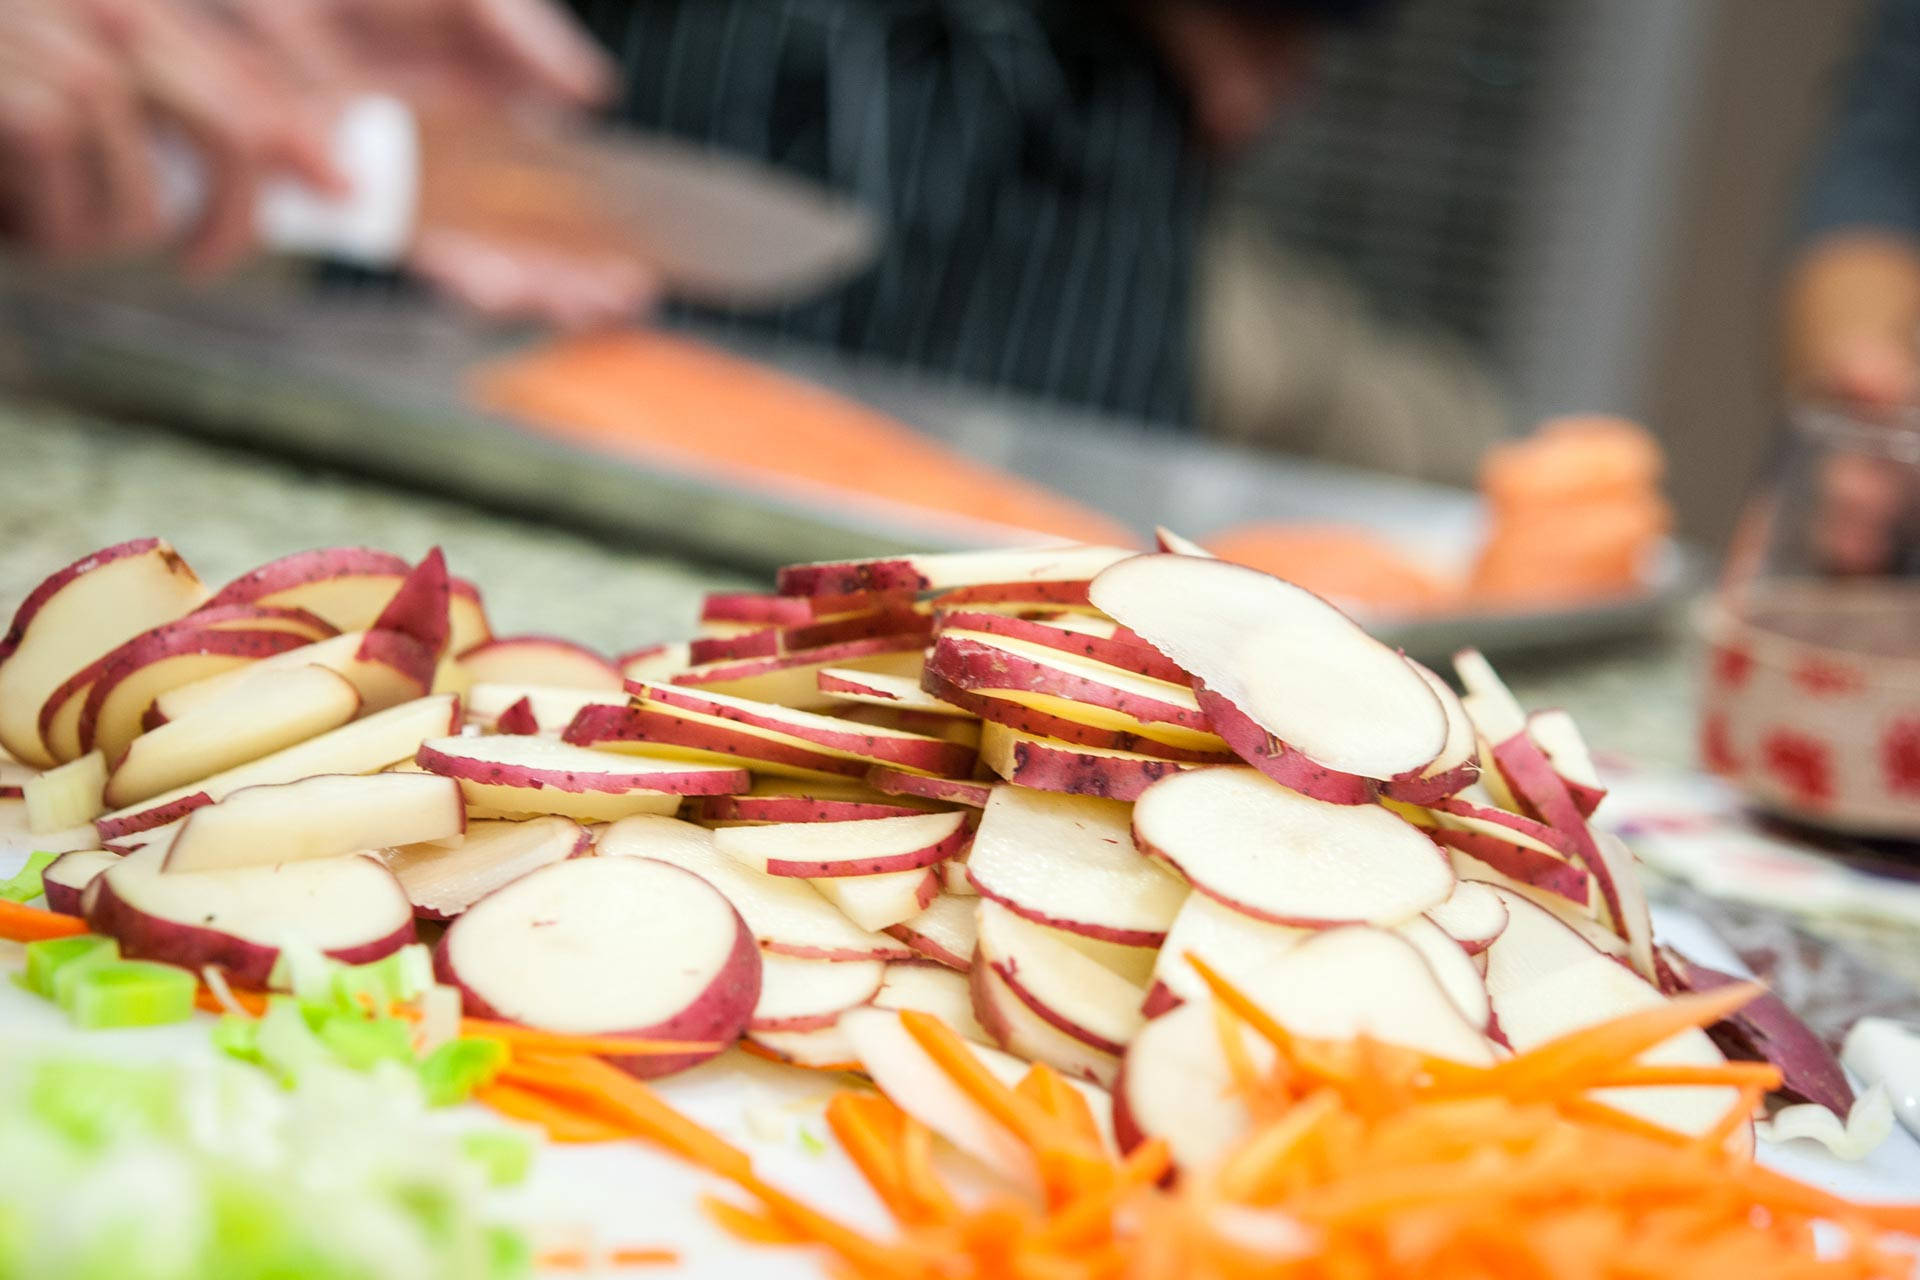 Zest Culinary Services uses the freshest ingredients